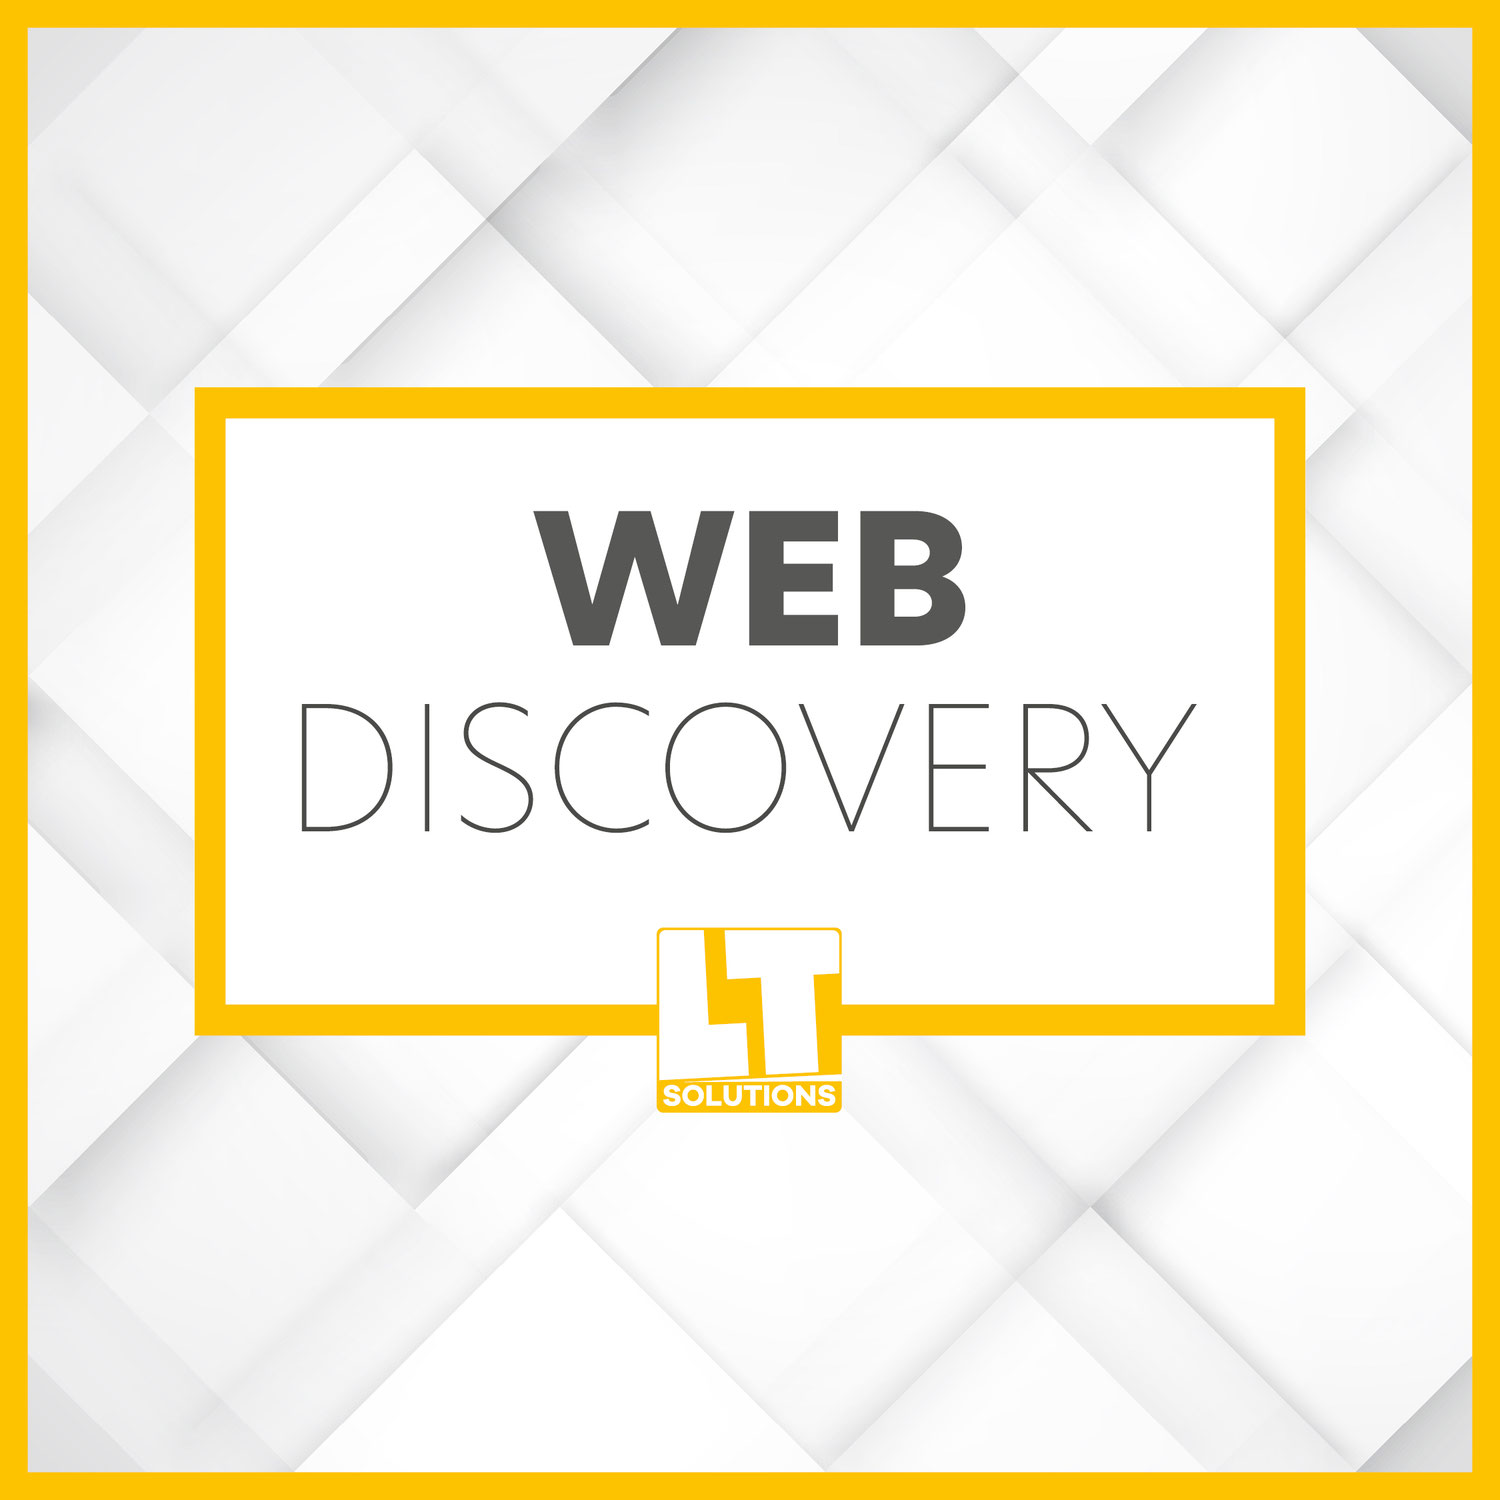 Web Discovery #1